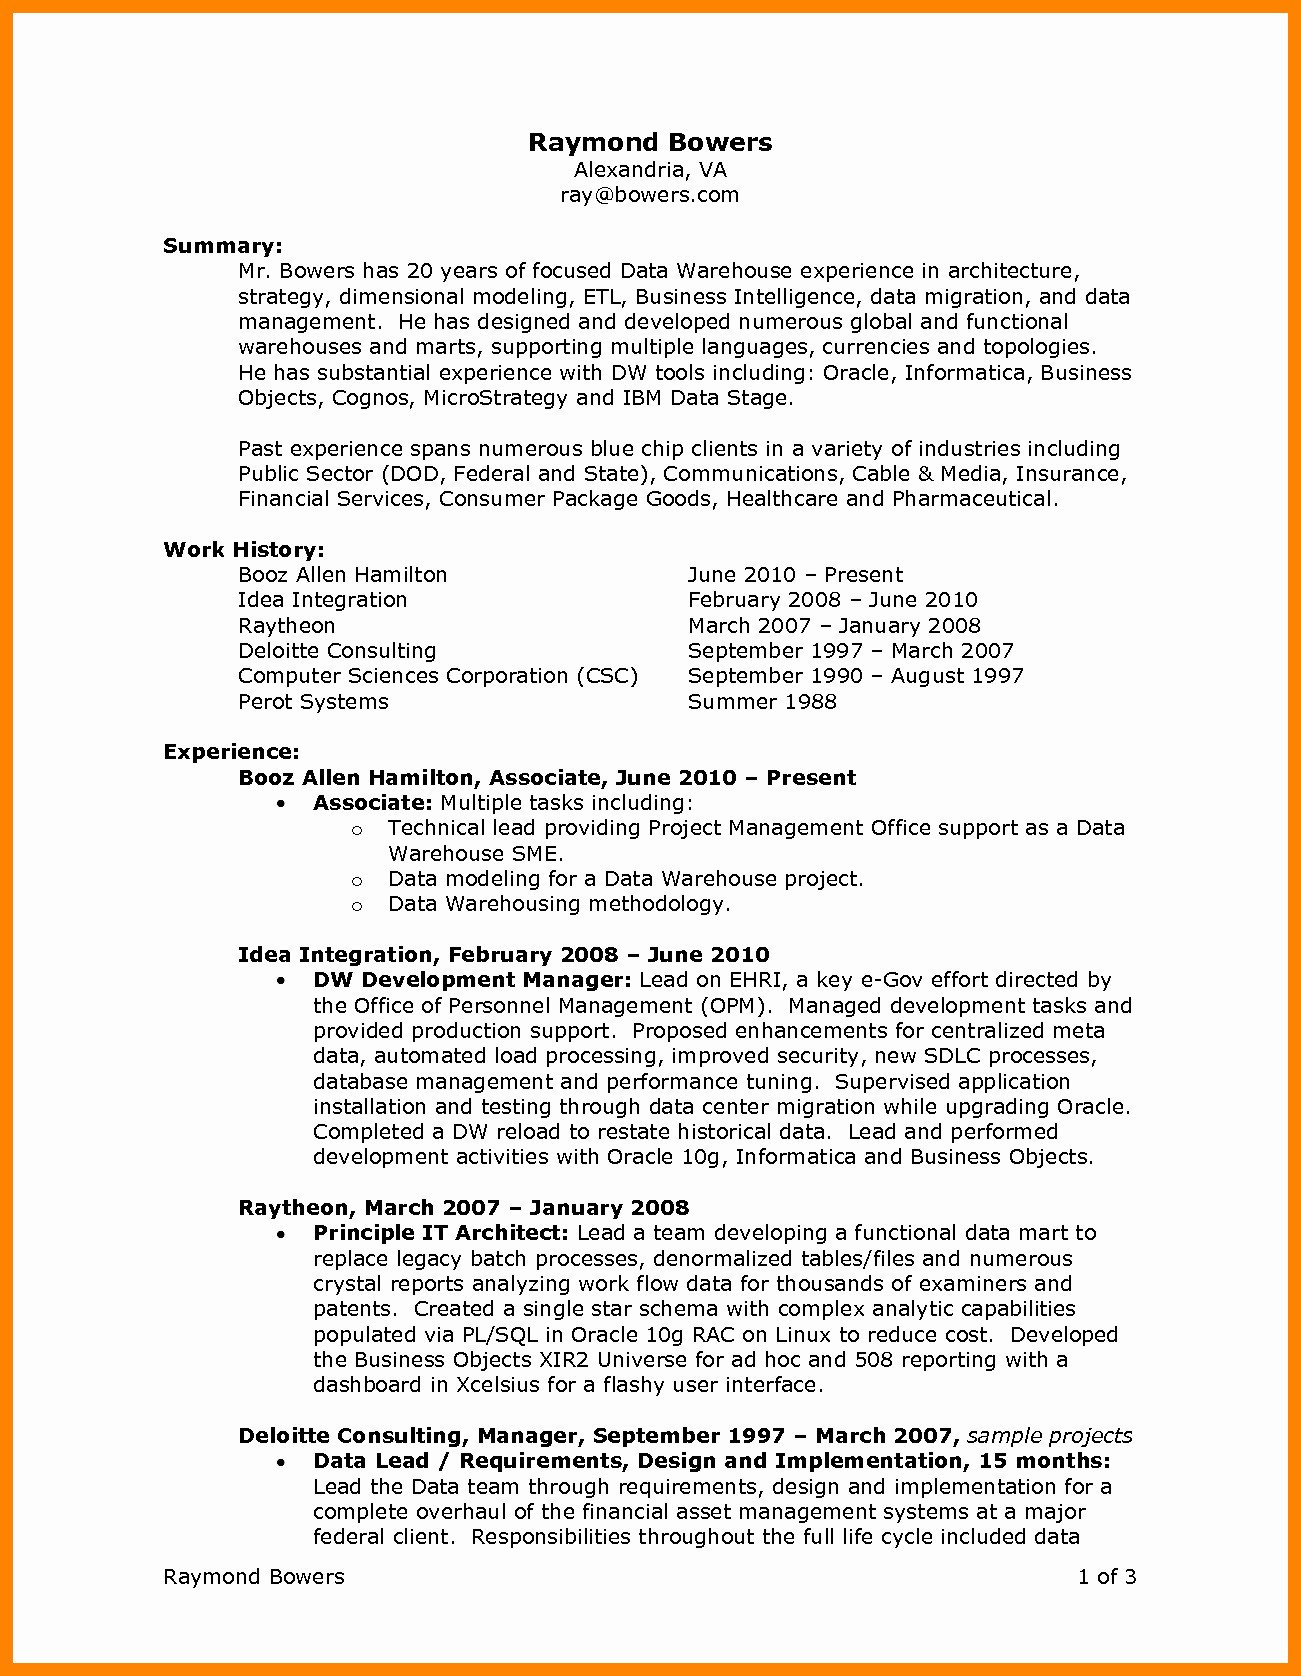 Internal Resume Example - Resume for Internal Promotion Template Free Downloads Beautiful